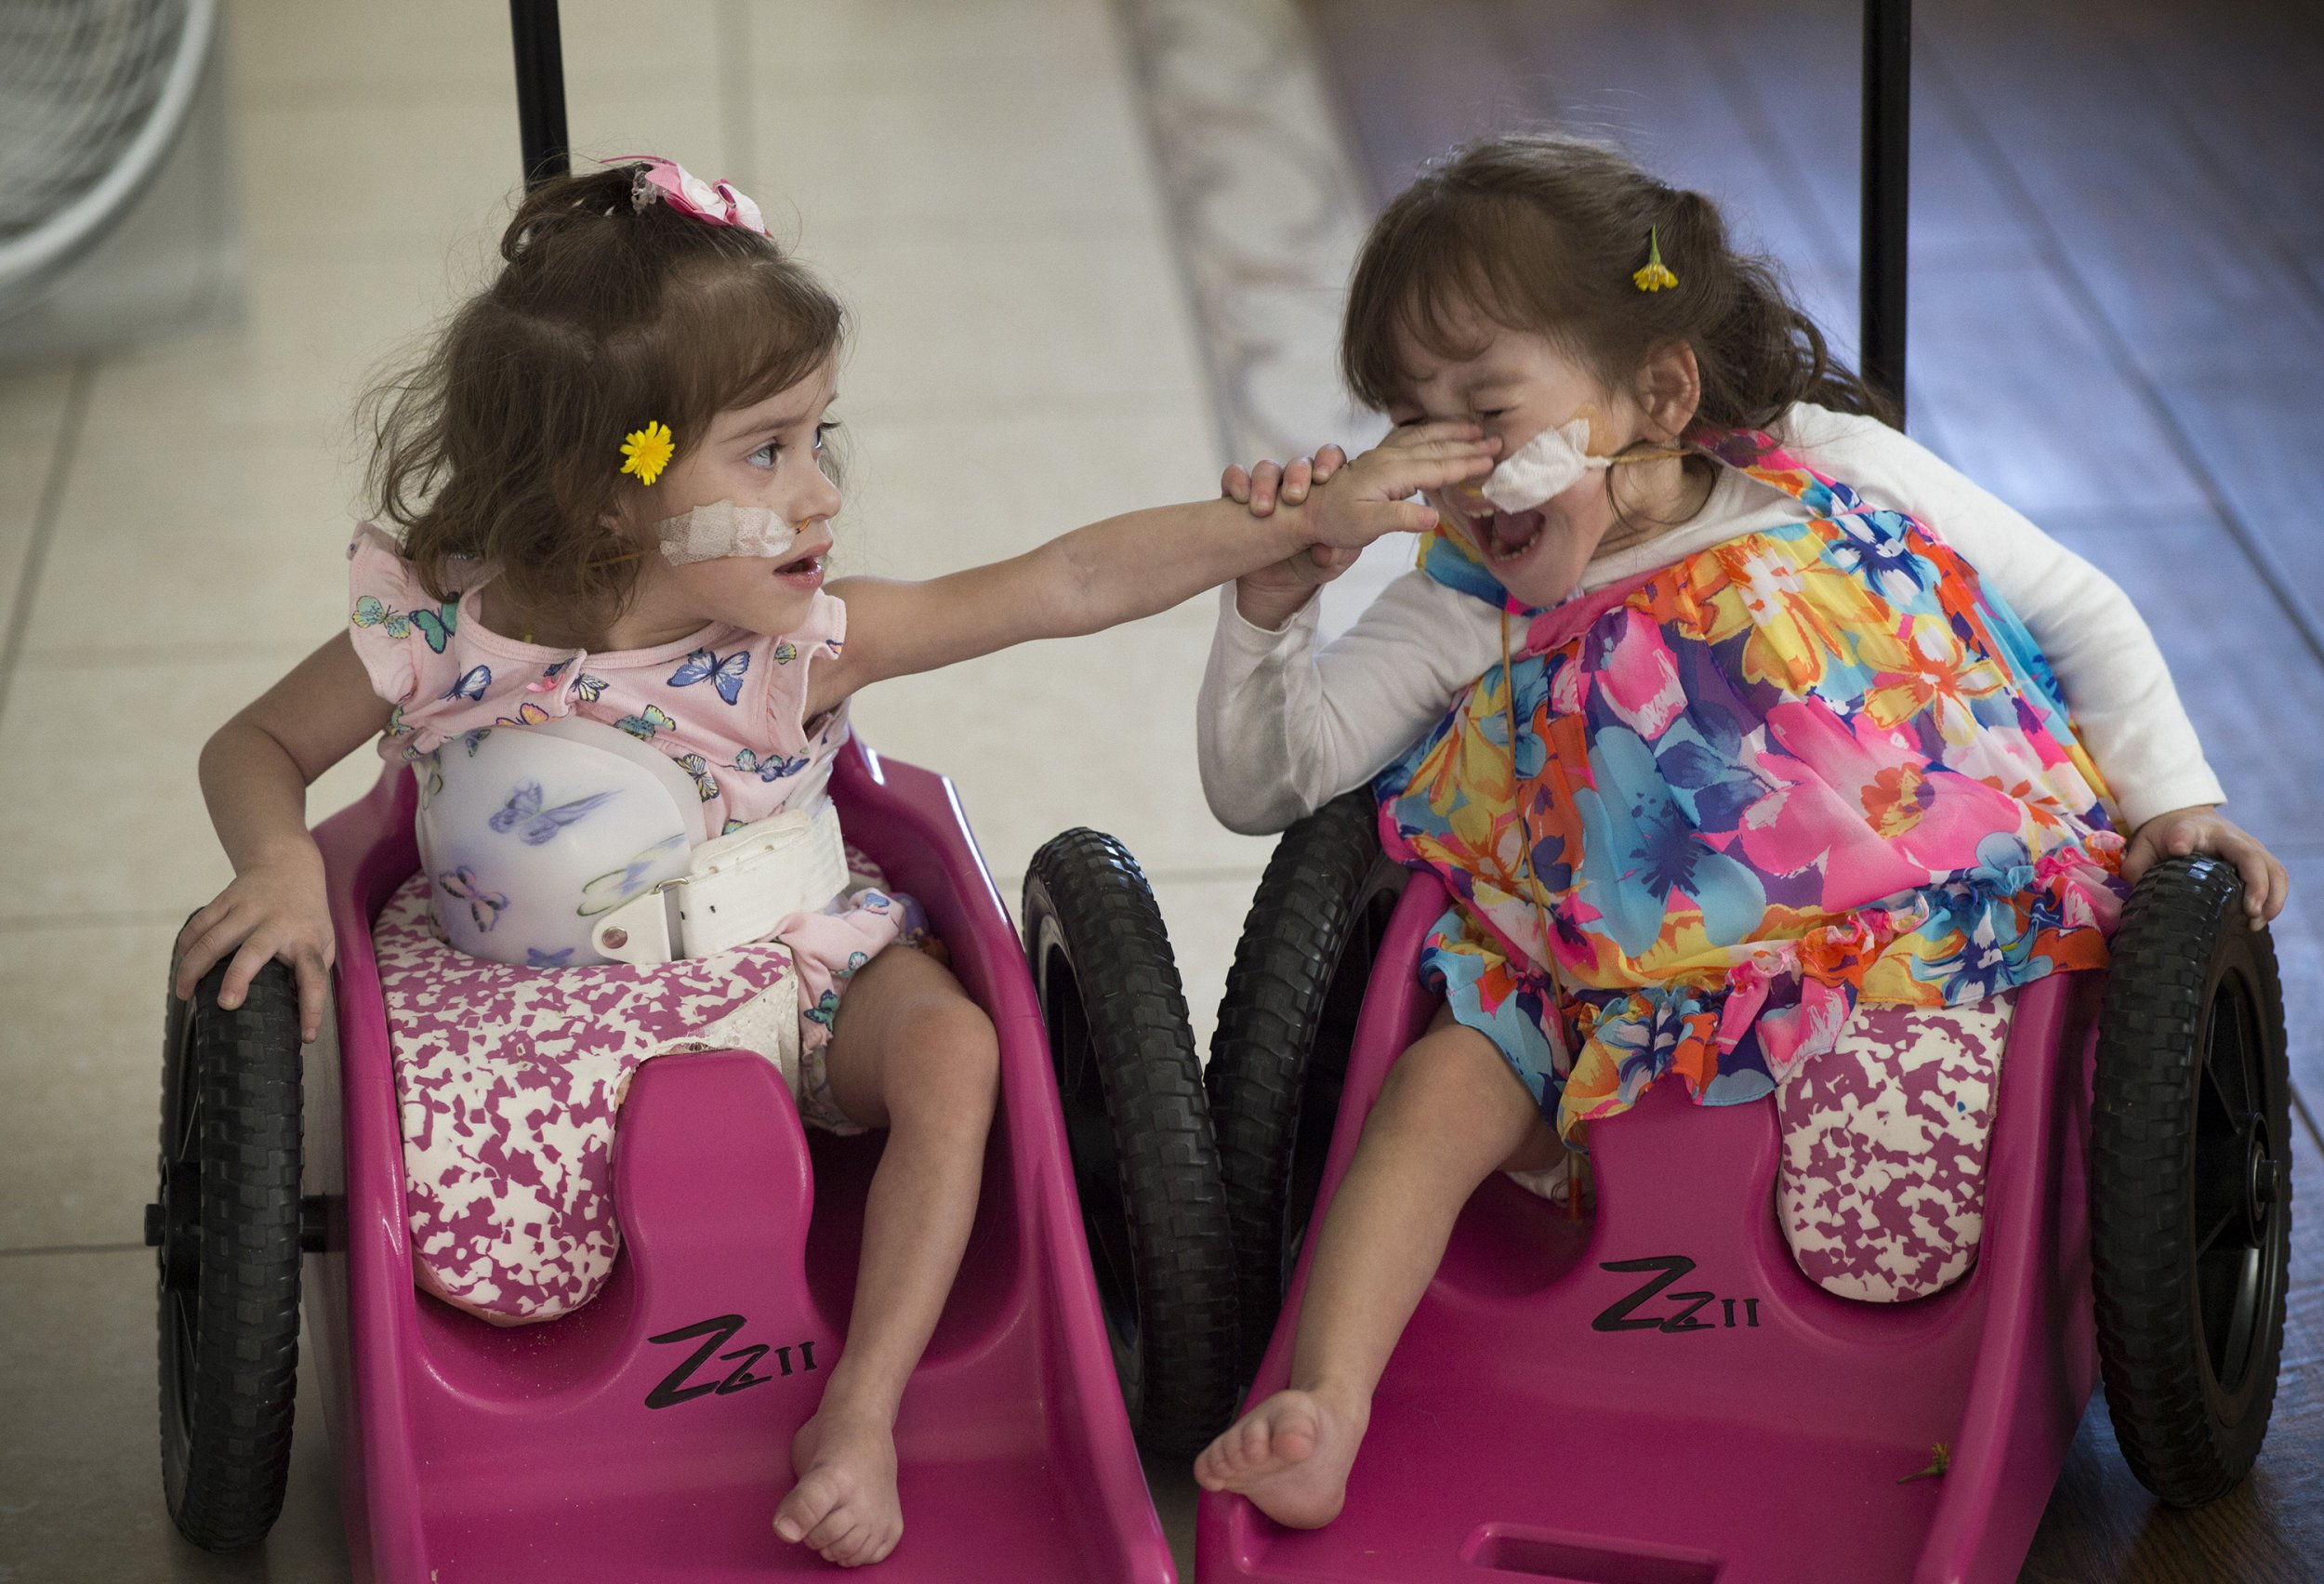 Formerly conjoined twins 'thrive' months after separation surgery